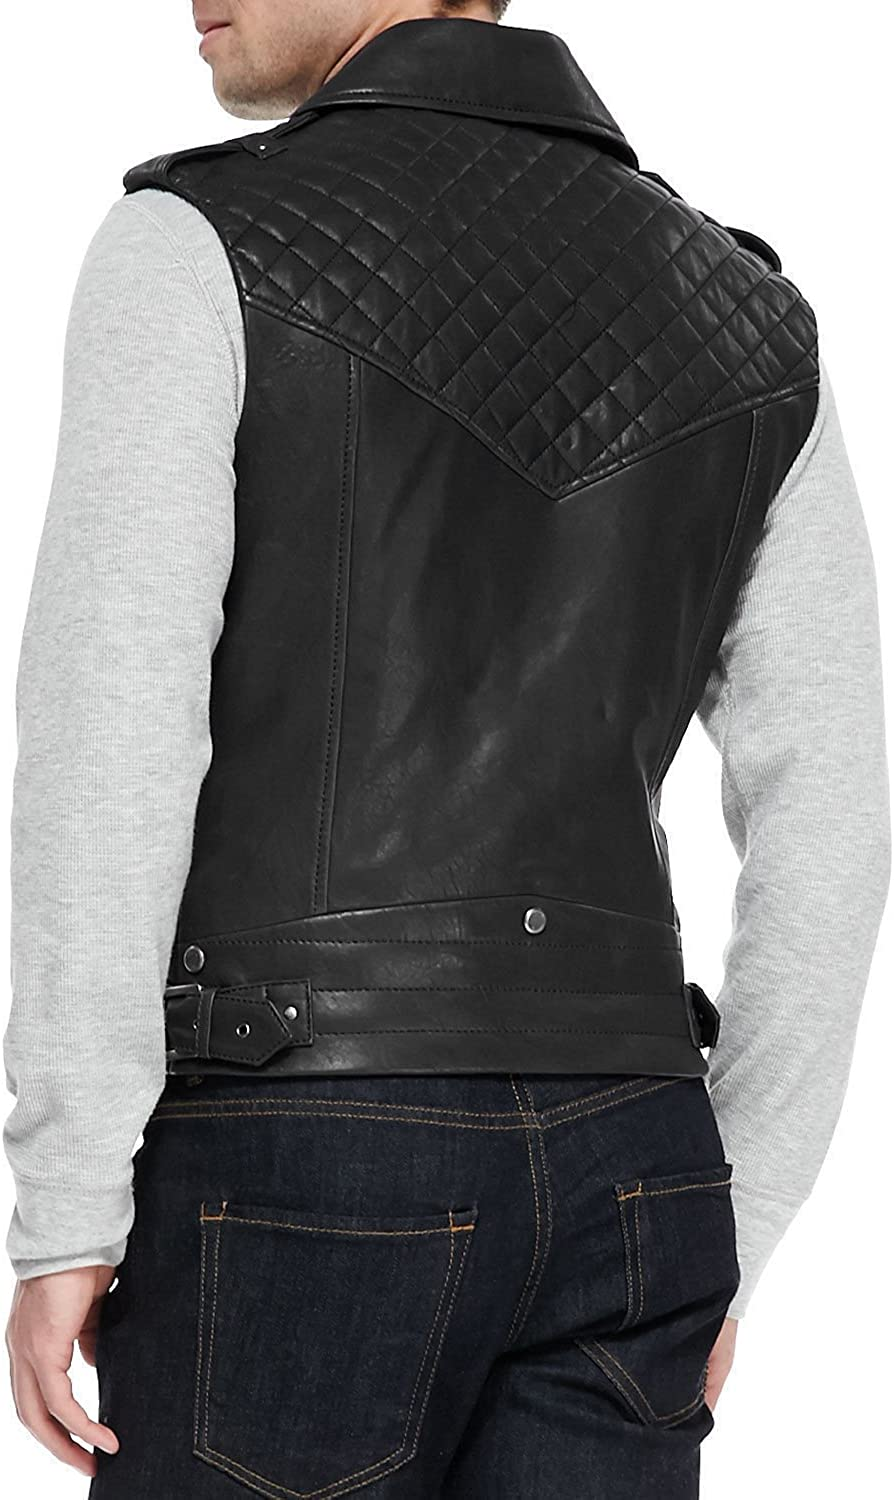 TrendzInn Mens Genuine Lambskin Leather Motorcycle Vest Slim fit Sleeveless Biker Jacket